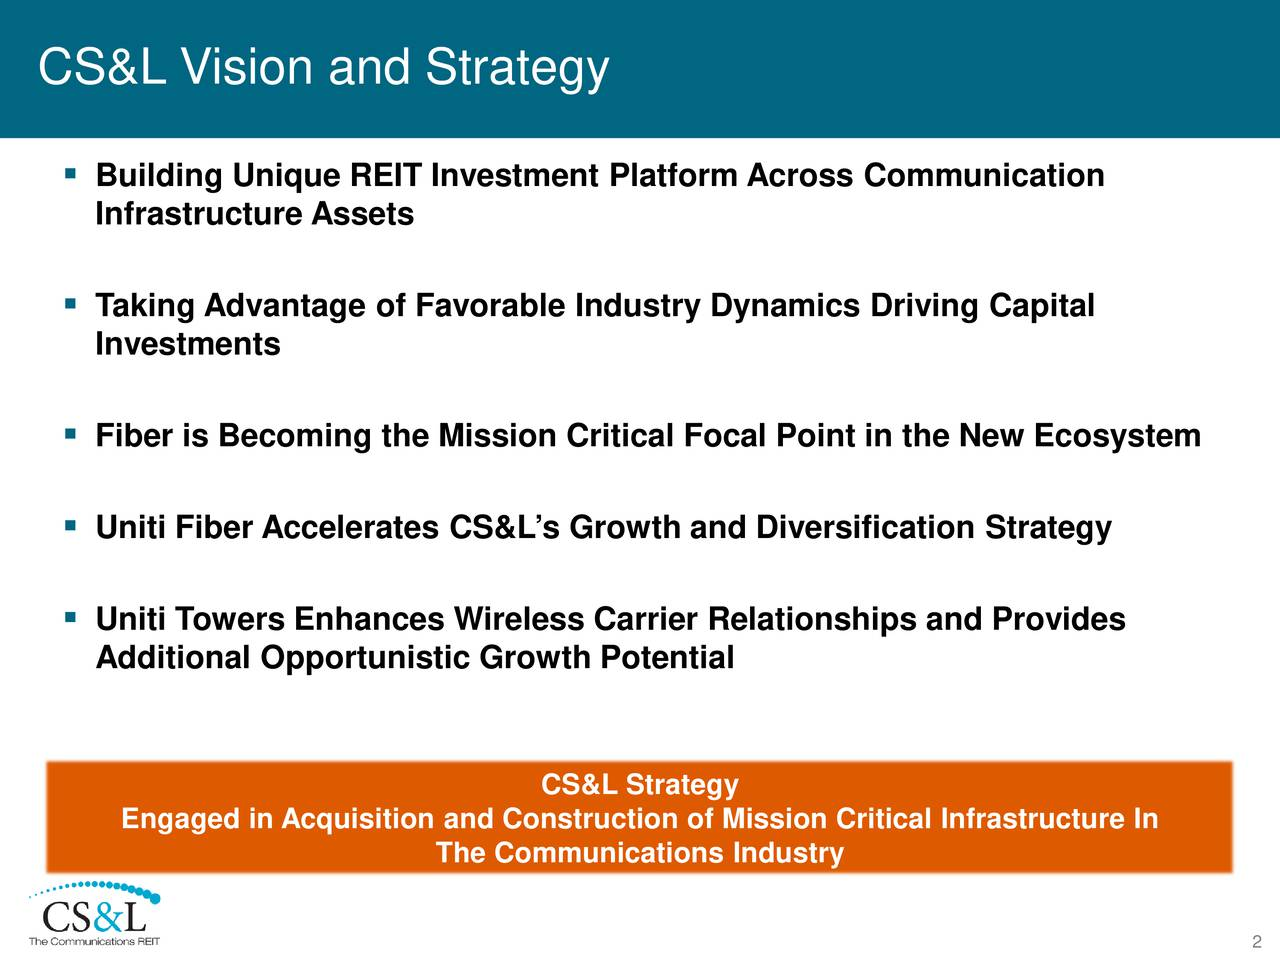 Building Unique REIT Investment Platform AcrossCommunication Infrastructure Assets Taking Advantage of Favorable Industry Dynamics Driving Capital Investments Fiber is Becoming the Mission Critical Focal Point in the New Ecosystem Uniti Fiber AcceleratesCS&Ls Growth and Diversification Strategy Uniti Towers Enhances Wireless Carrier Relationships and Provides Additional Opportunistic Growth Potential CS&L Strategy Engaged in Acquisition and Construction of Mission Critical Infrastructure In The Communications Industry